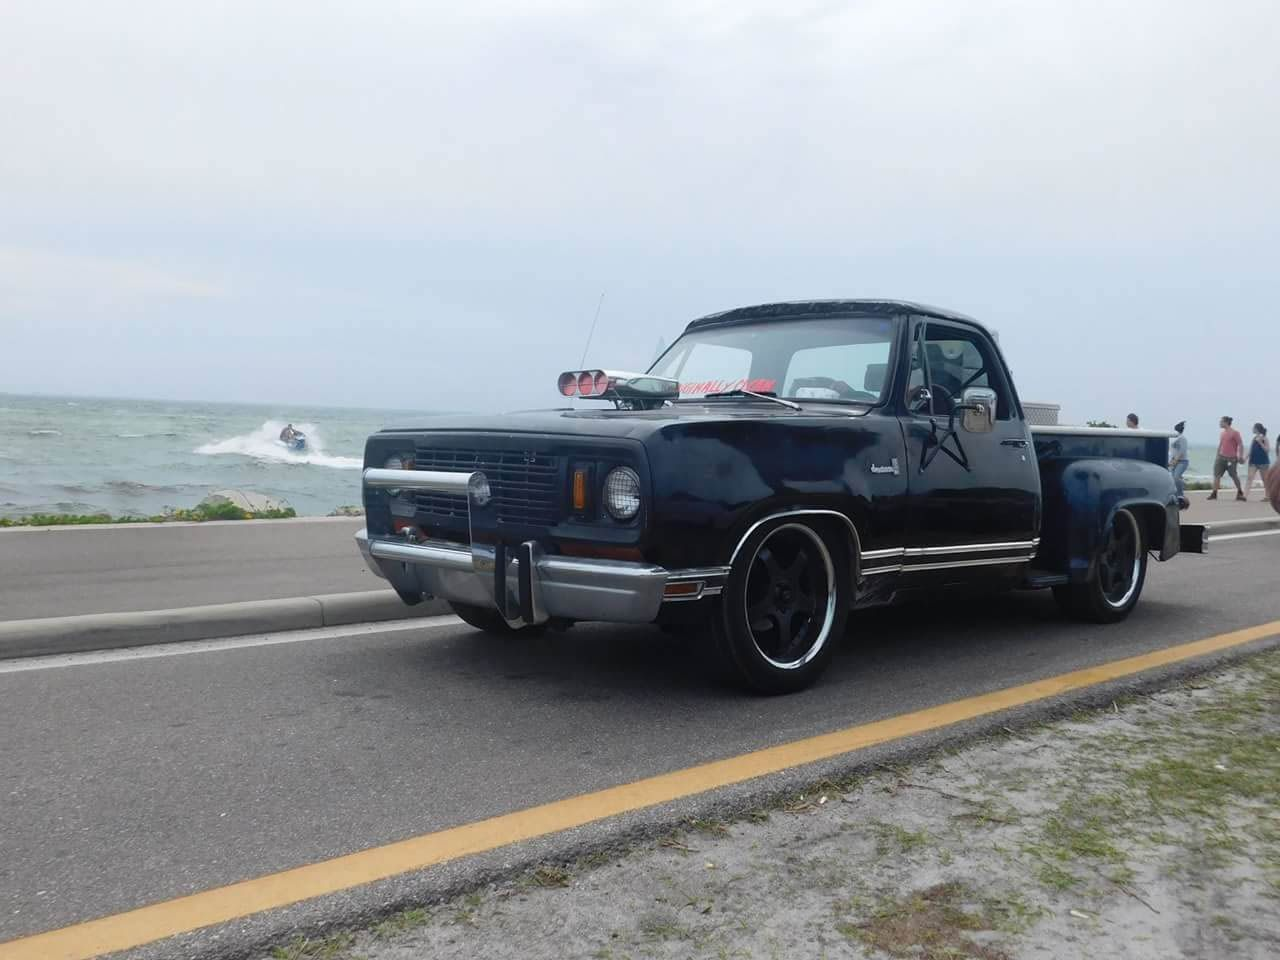 This 1978 Dodge Ram D100 Was Bought Brand New In 78 By T D Tisdale 3 Years Later It Ped To His Wife Then Daughter